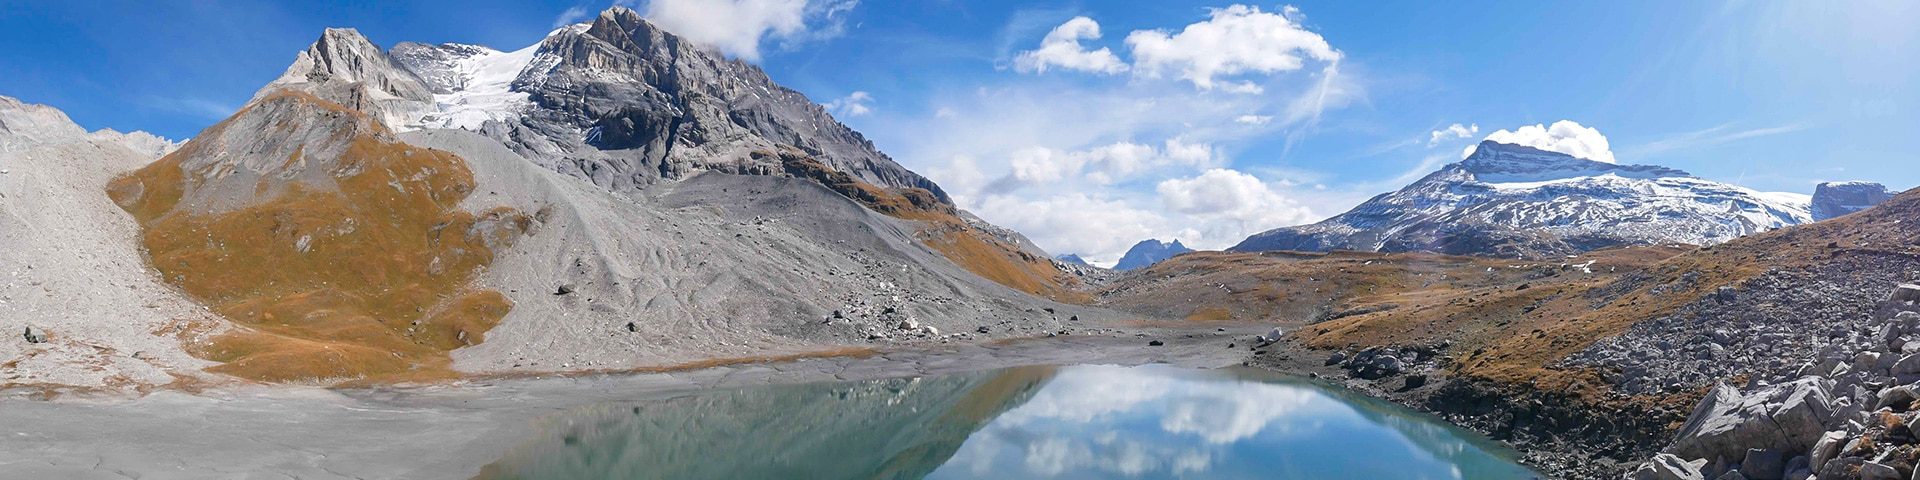 Family-friendly hikes in France, Vanoise National Park